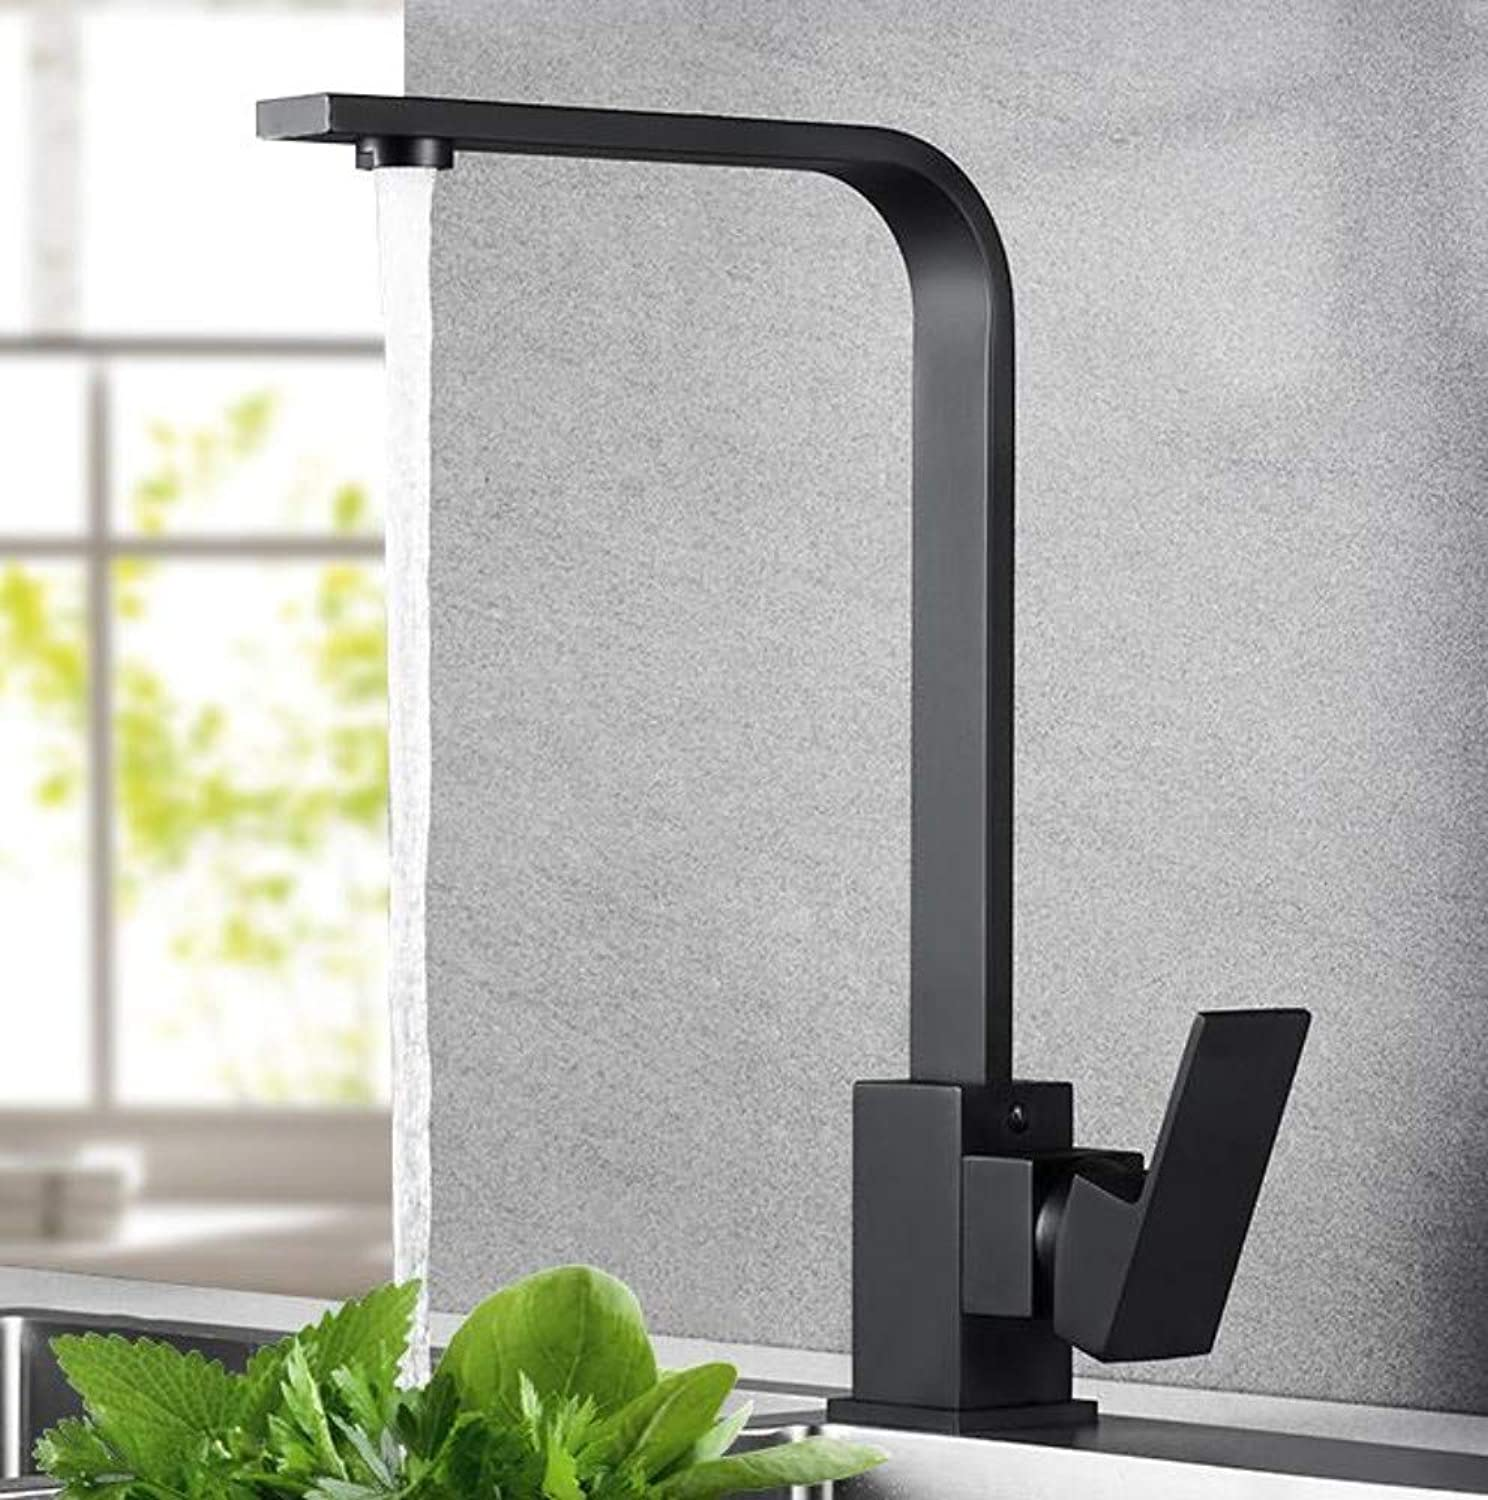 Bathroom Faucet Black Kitchen Sink Sink Sink Hot and Cold Copper Square redatable Kitchen Sink Sink Faucet